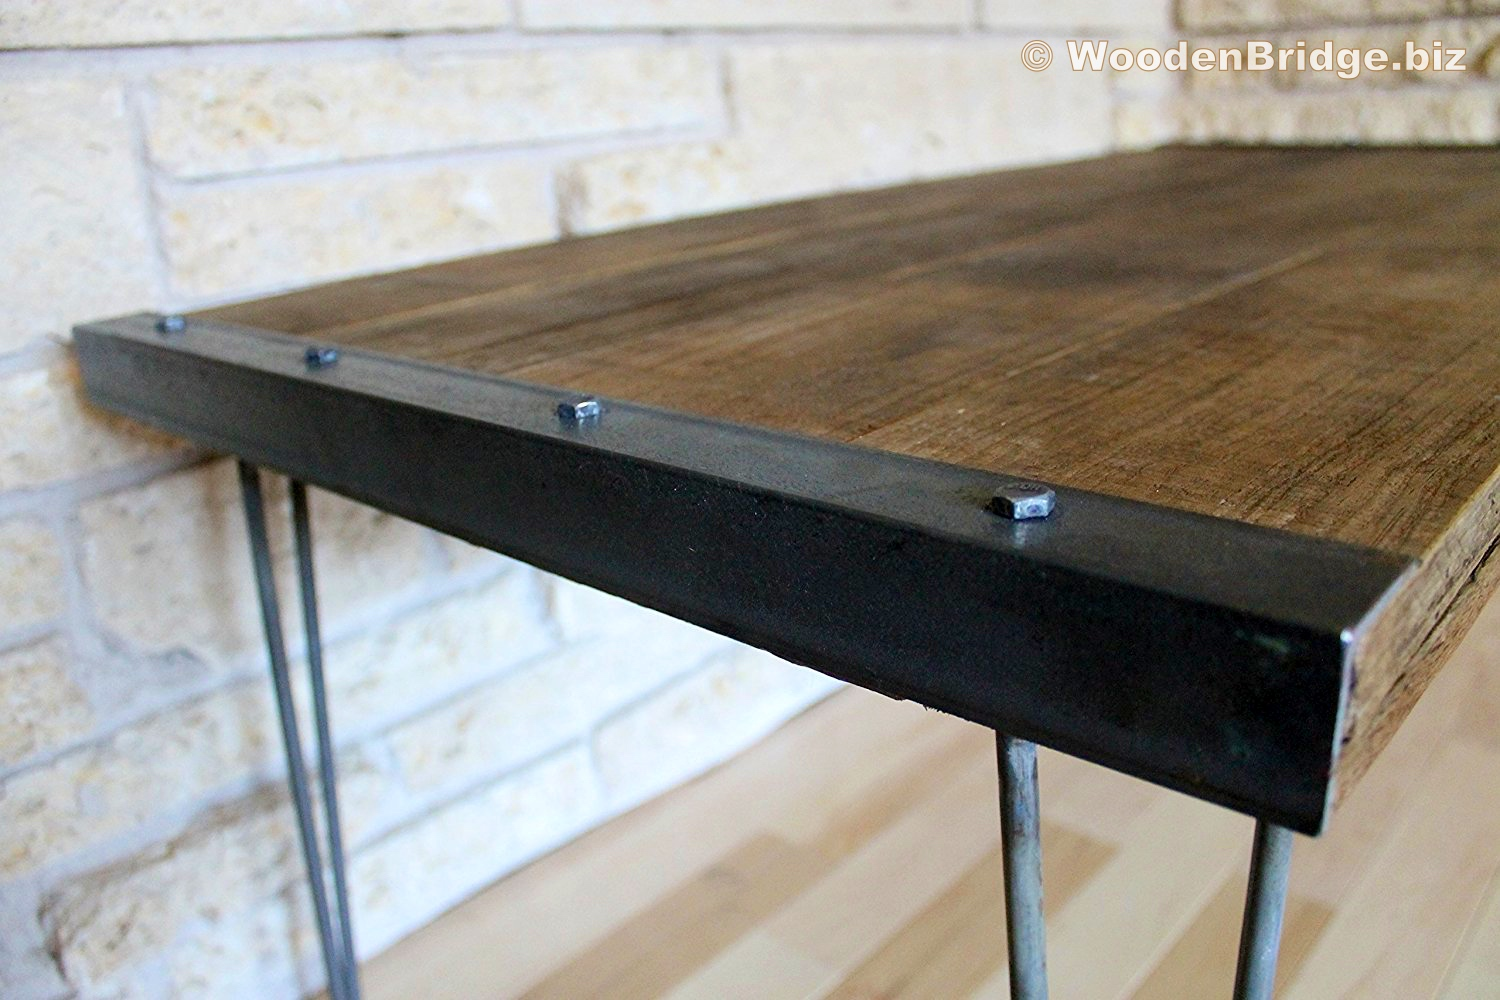 Reclaimed Wood Coffee Tables Ideas – 1500 x 1000 1